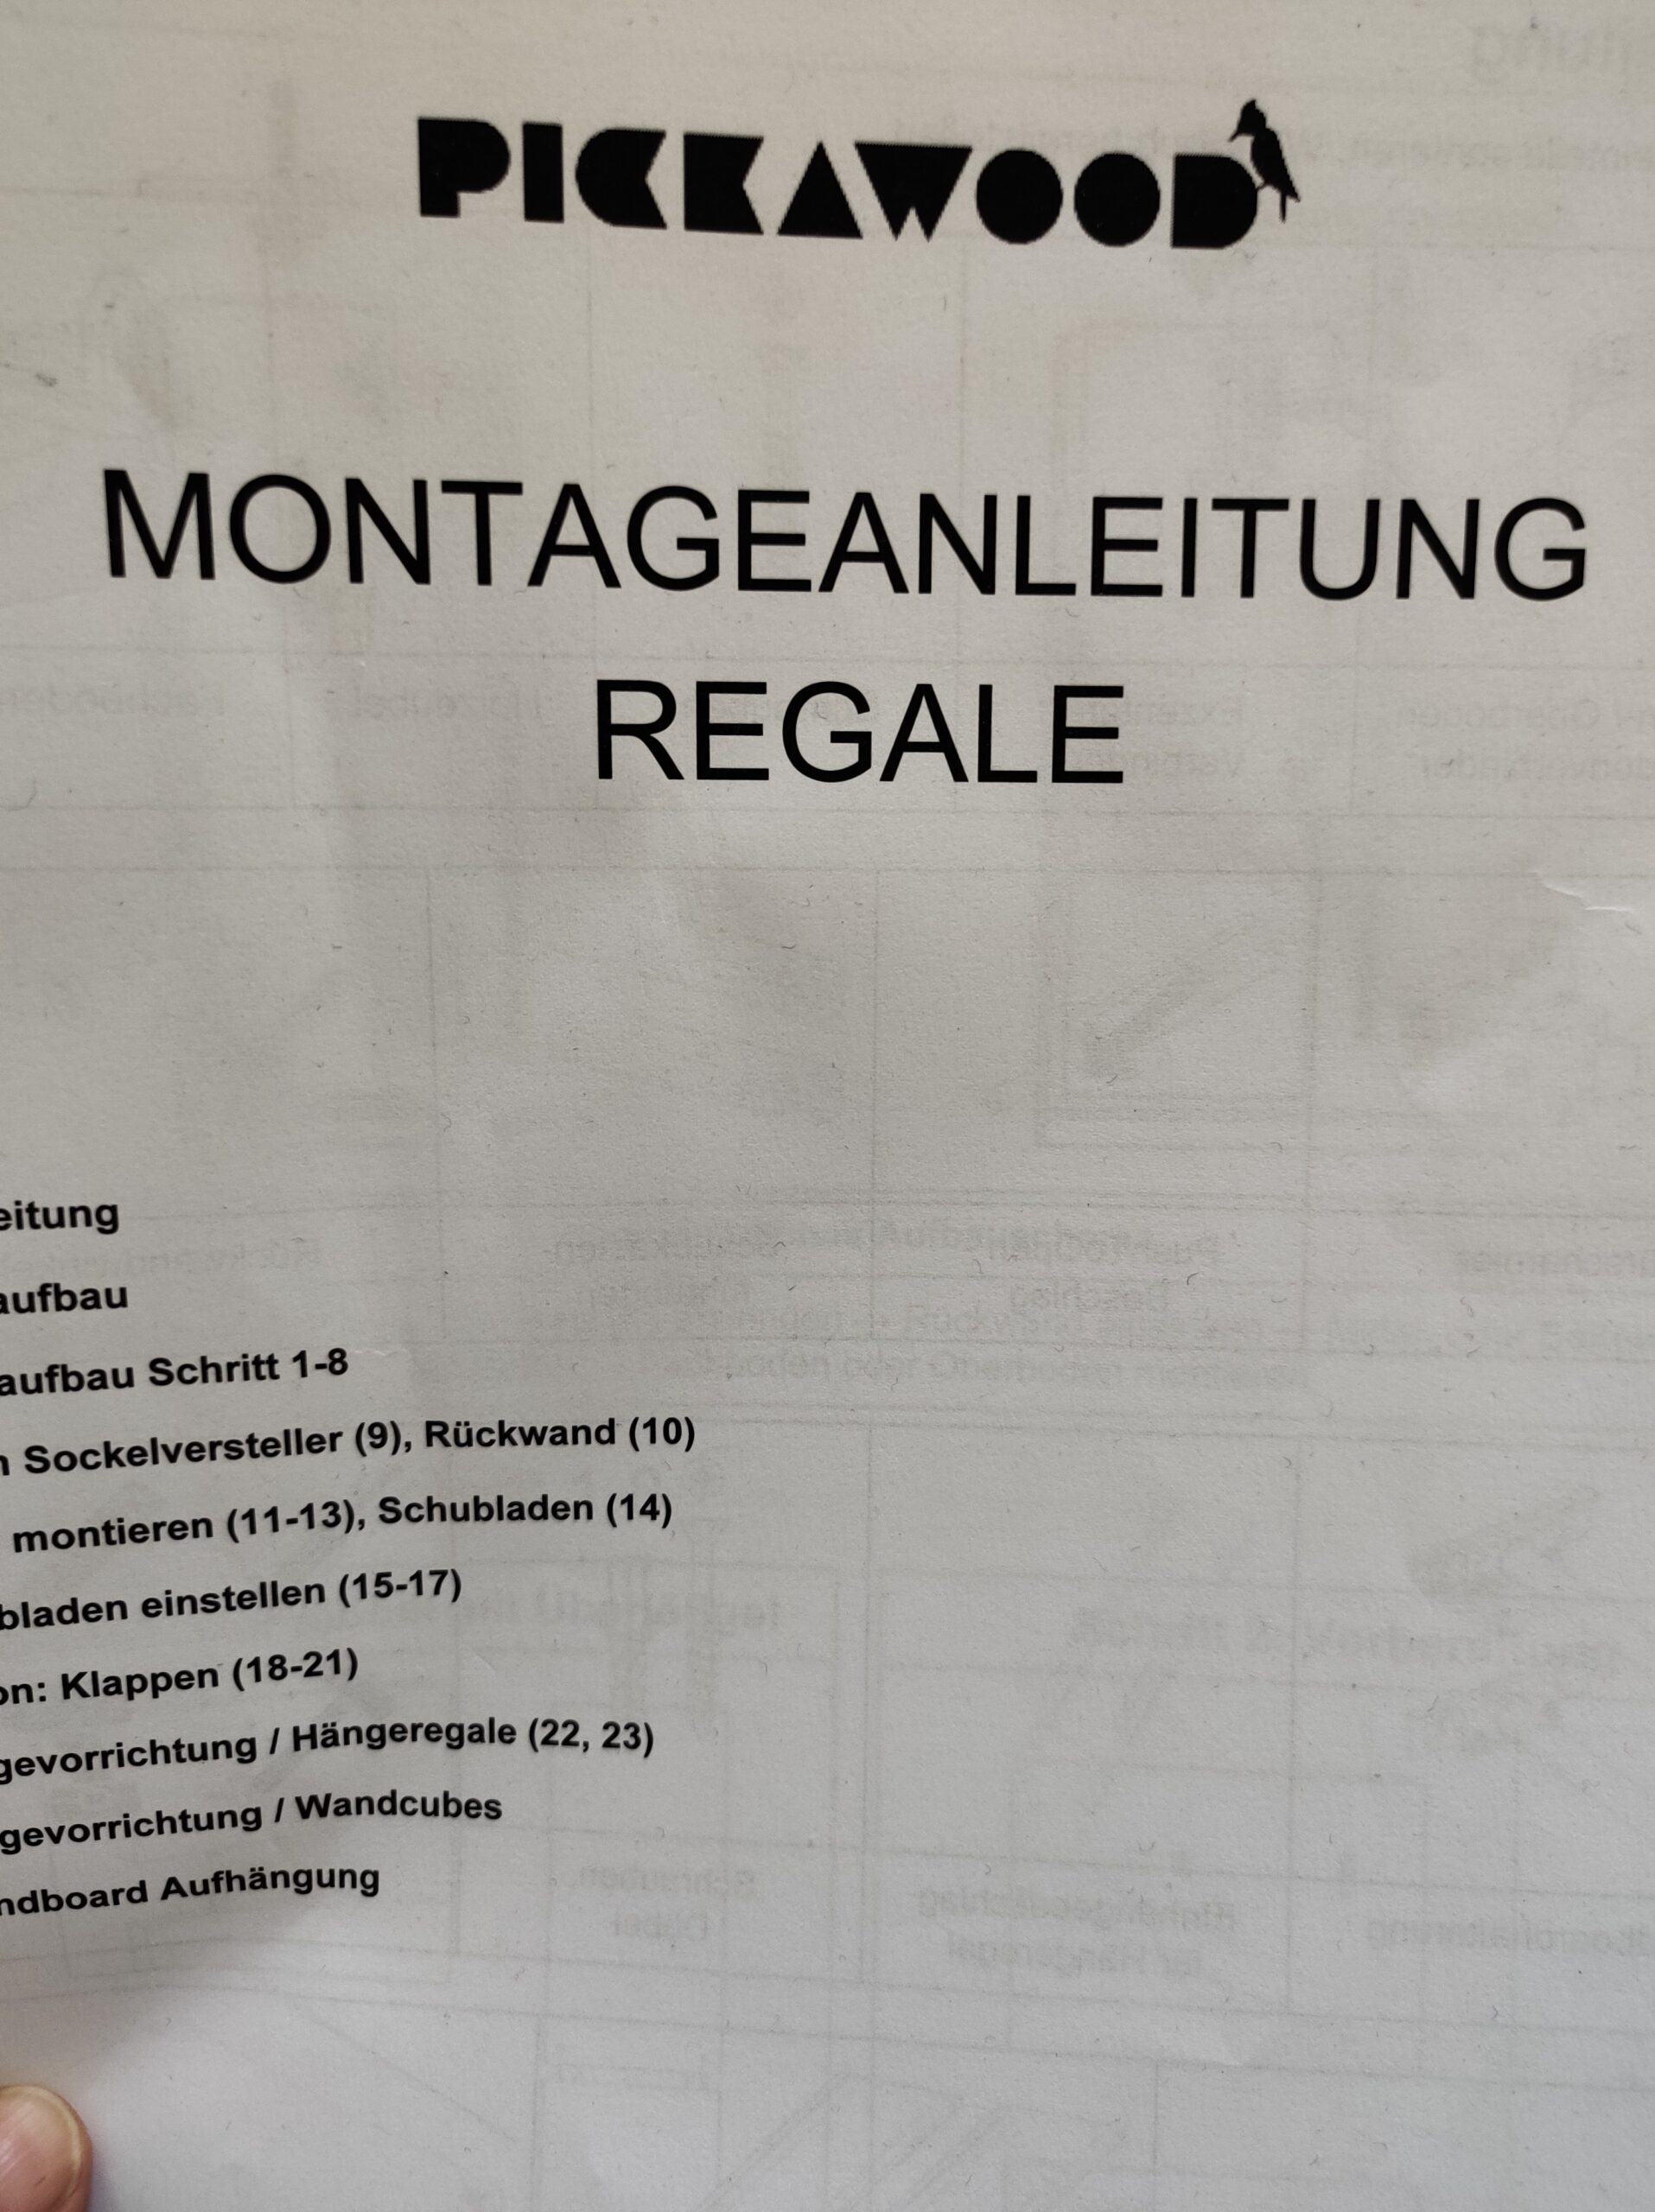 Montageanleitung Pickawood